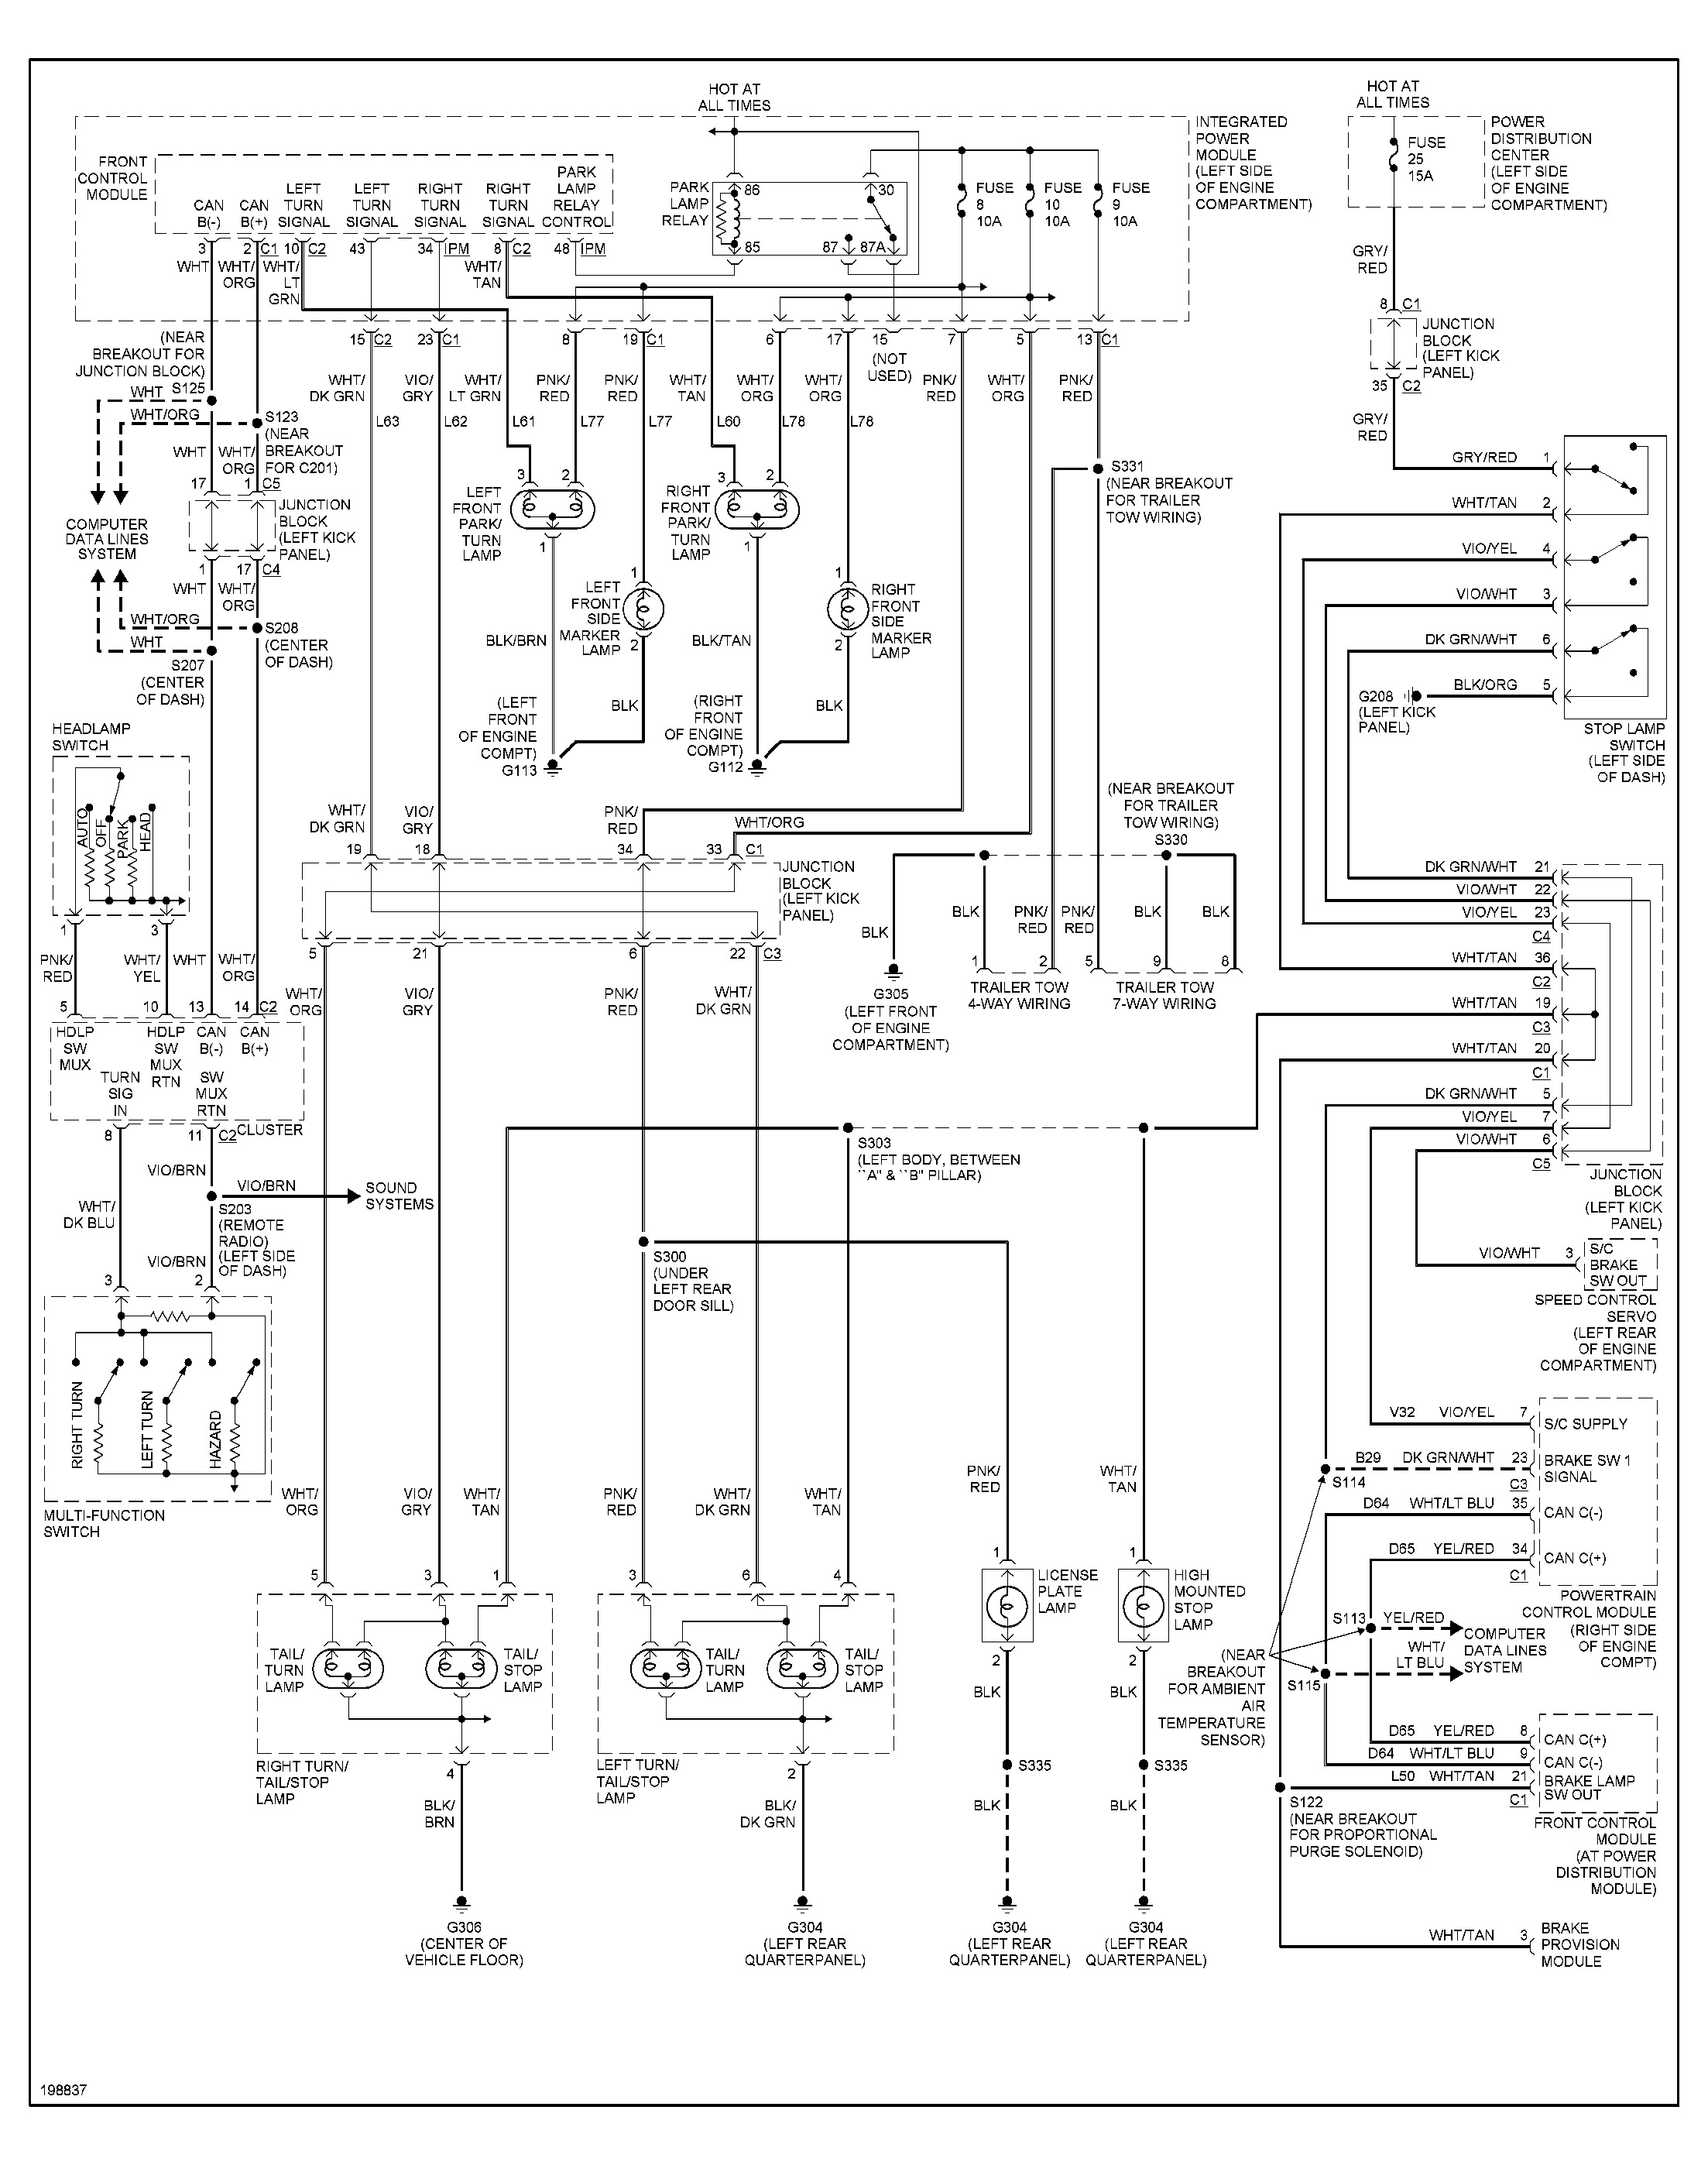 [DIAGRAM] 2004 Dodge Durango Ignition Wiring Diagram FULL